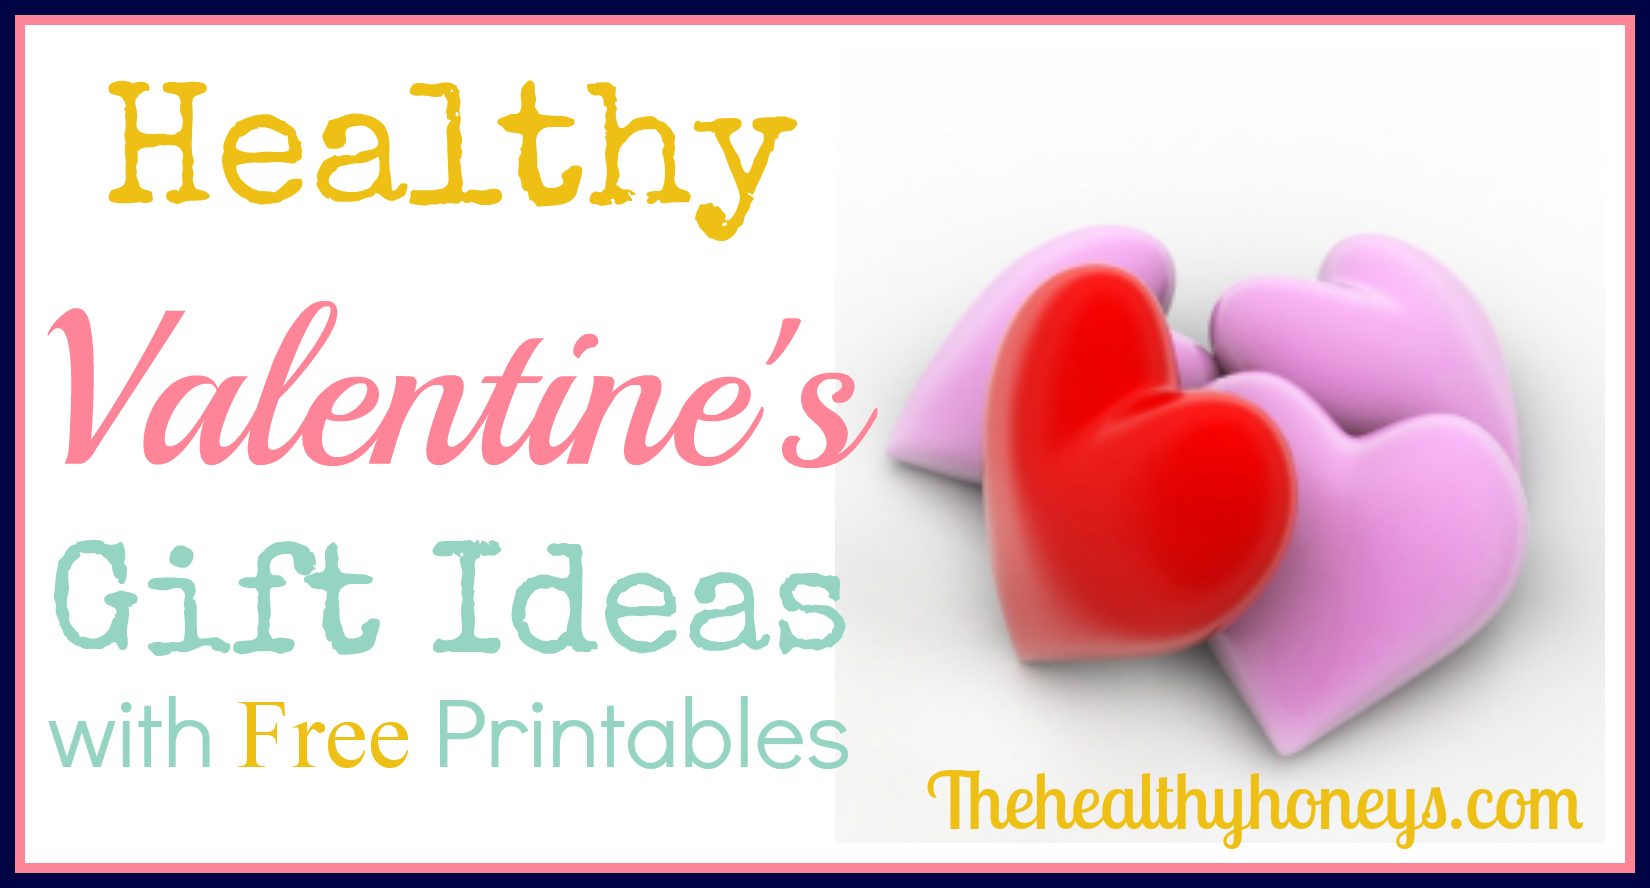 Healthy Valentine's Gift Ideas with Free Printables